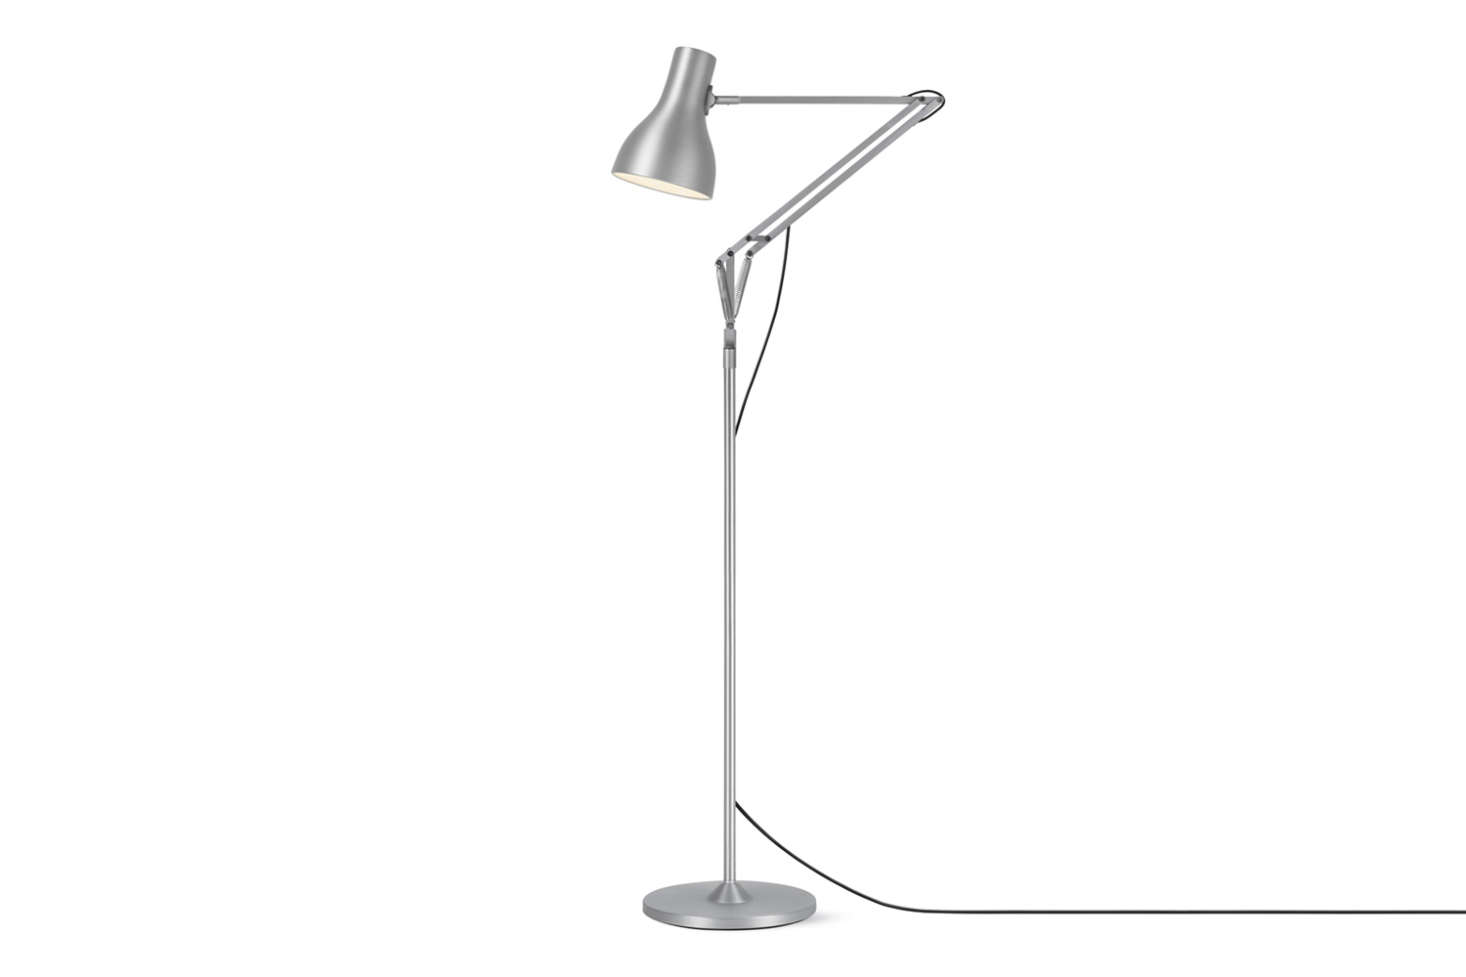 The Type 75 Floor Lamp designed by Sir Kenneth Grange for Anglepoise is an all-time classic updated from the brand's 1950s and 1970s versions. This style is available in four colors/finishes for $325 to $340 at Design Within Reach.